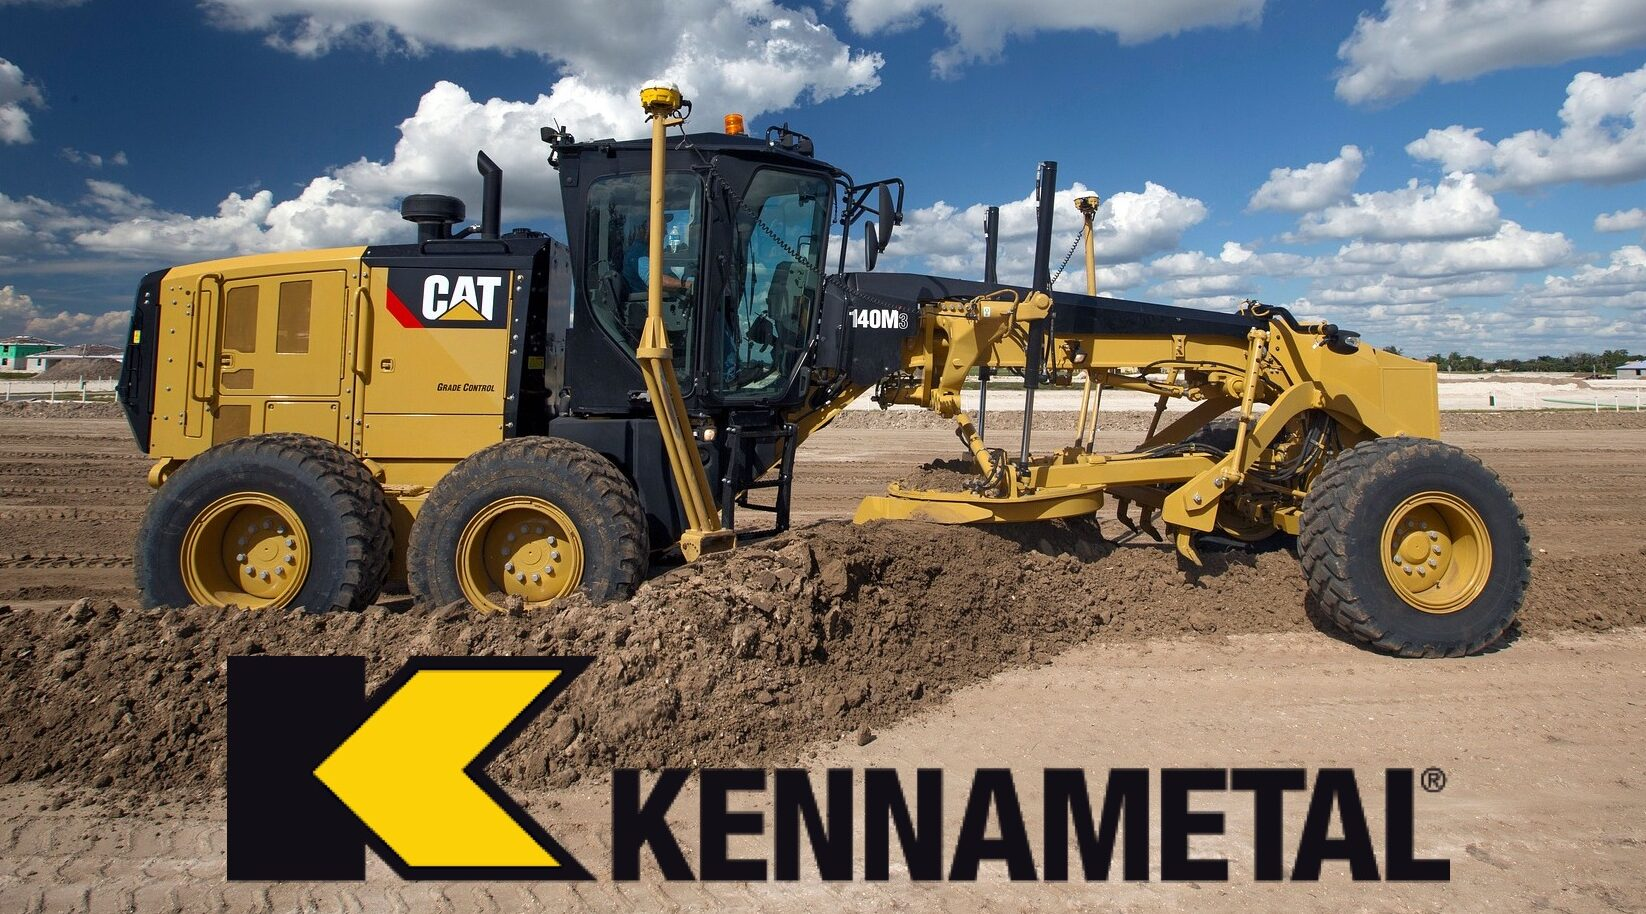 Kennametal scarifier bits, boards, and accessories